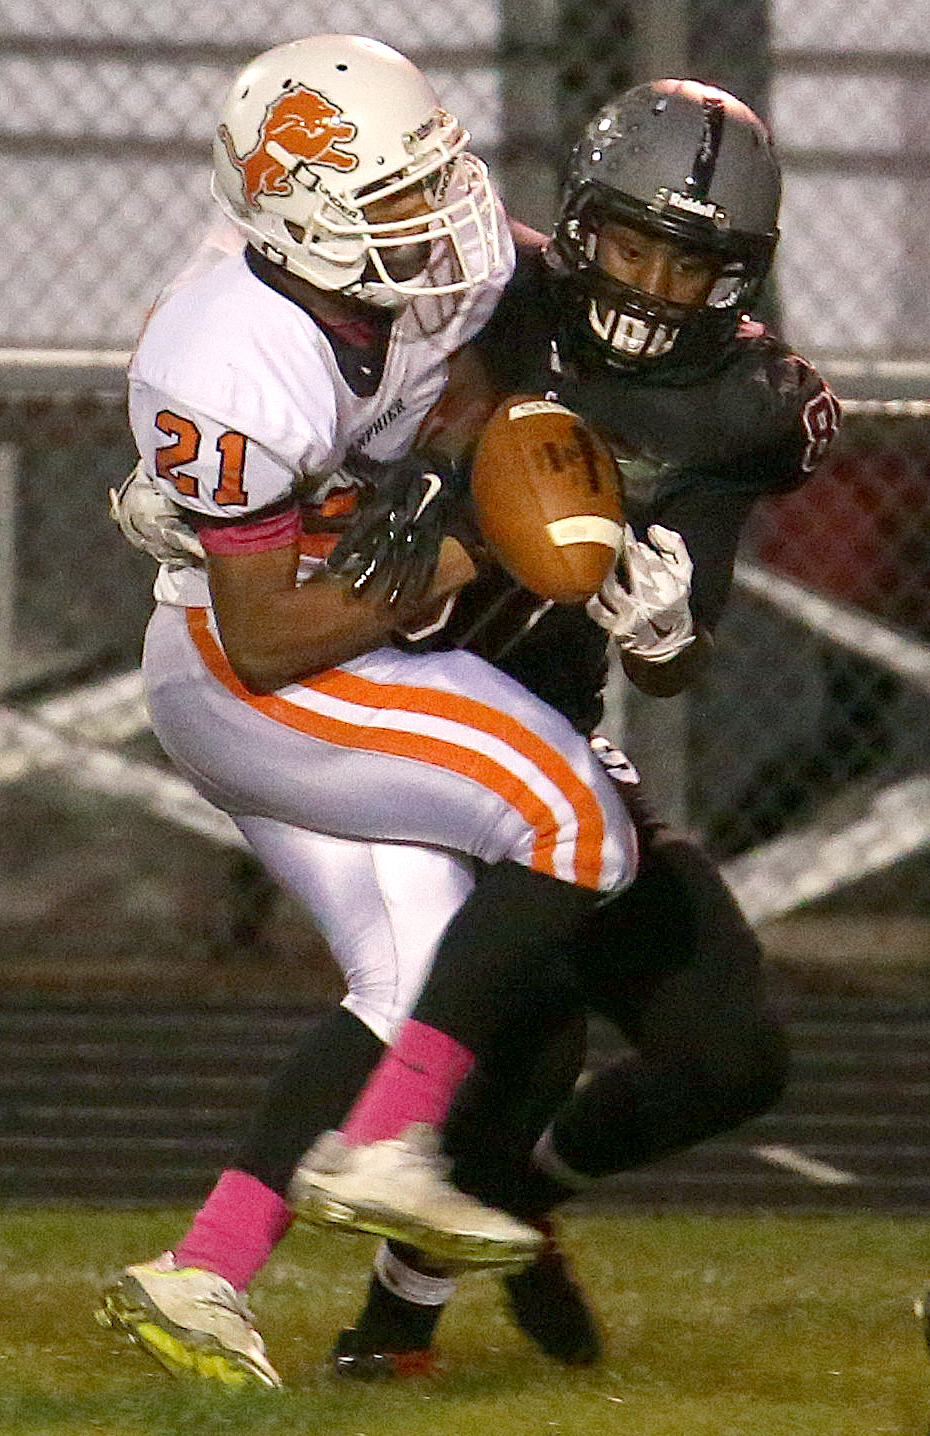 Lanphier defender Cameron Smith at left breaks up a long pass near the goal line intended for Senators receiver Cameron Jones that was eventually intercepted by Smith's teammate Elijah Forshee. David Spencer/The State Journal-Register